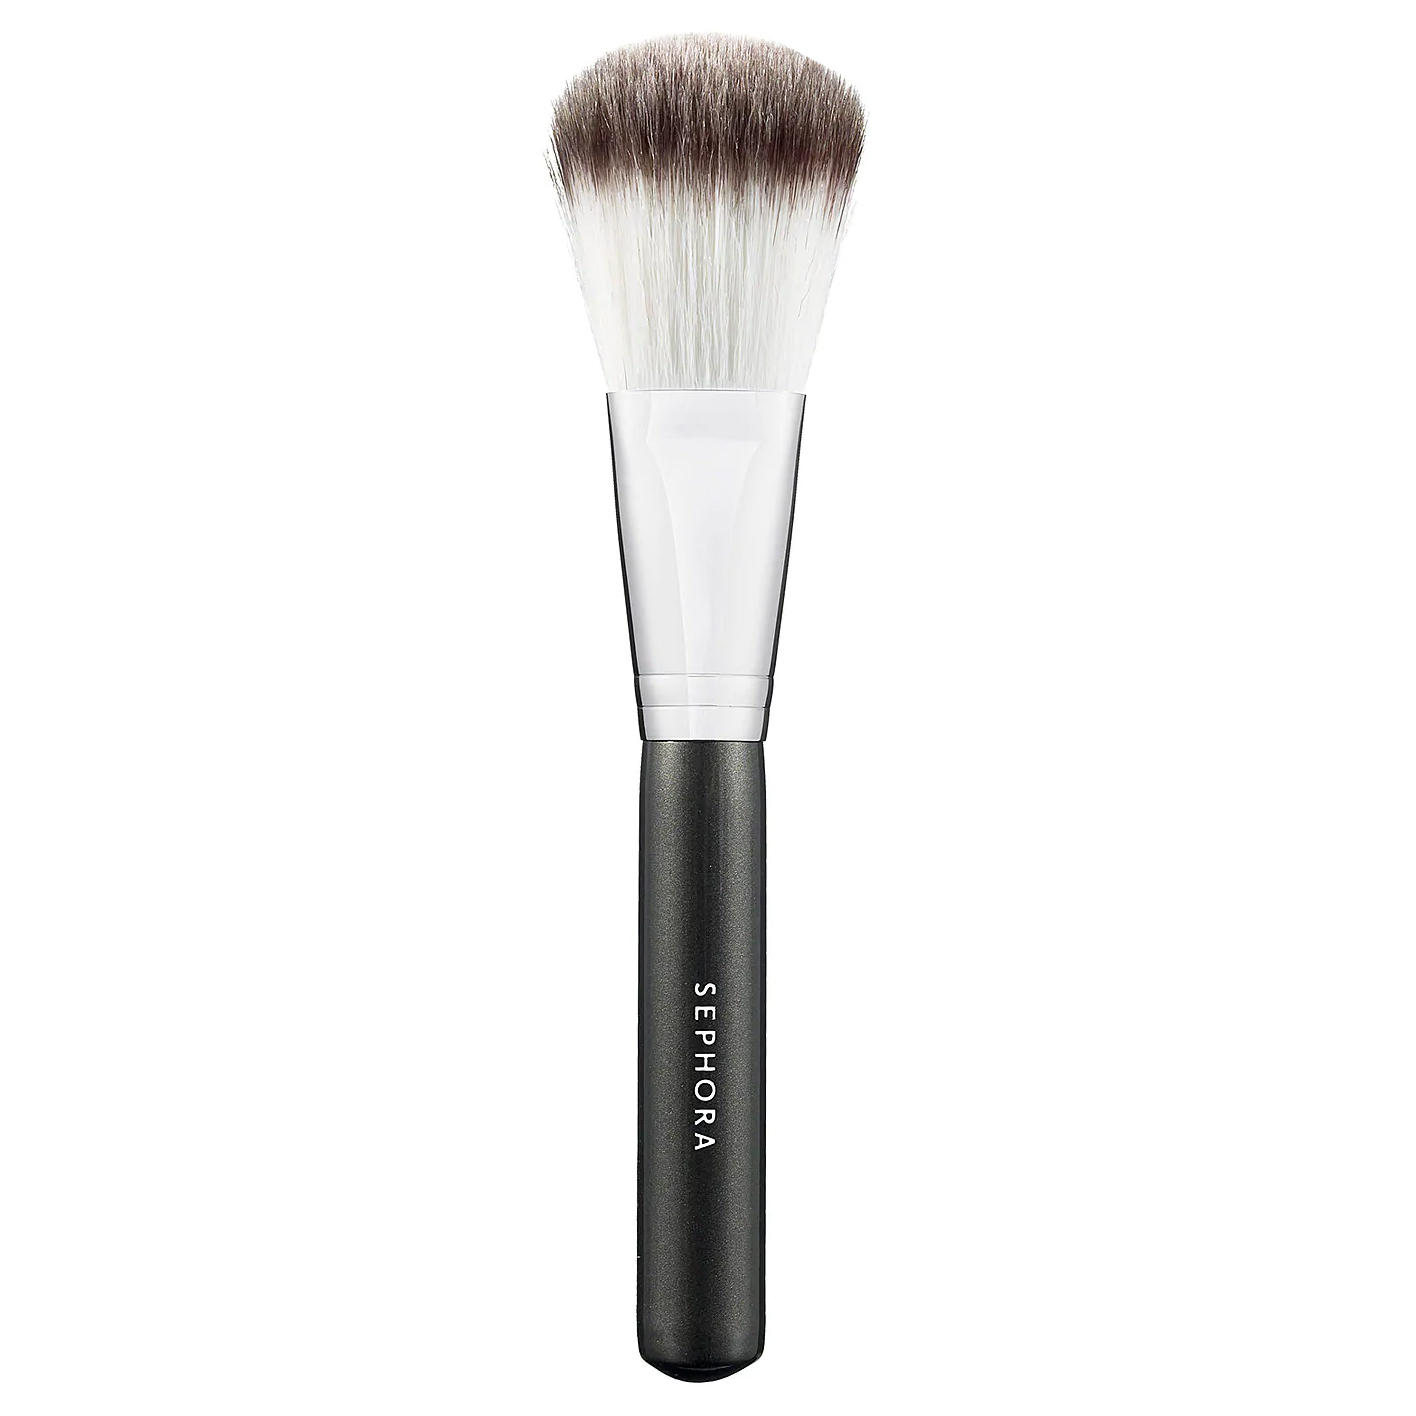 Sephora Airbrush Powder Brush